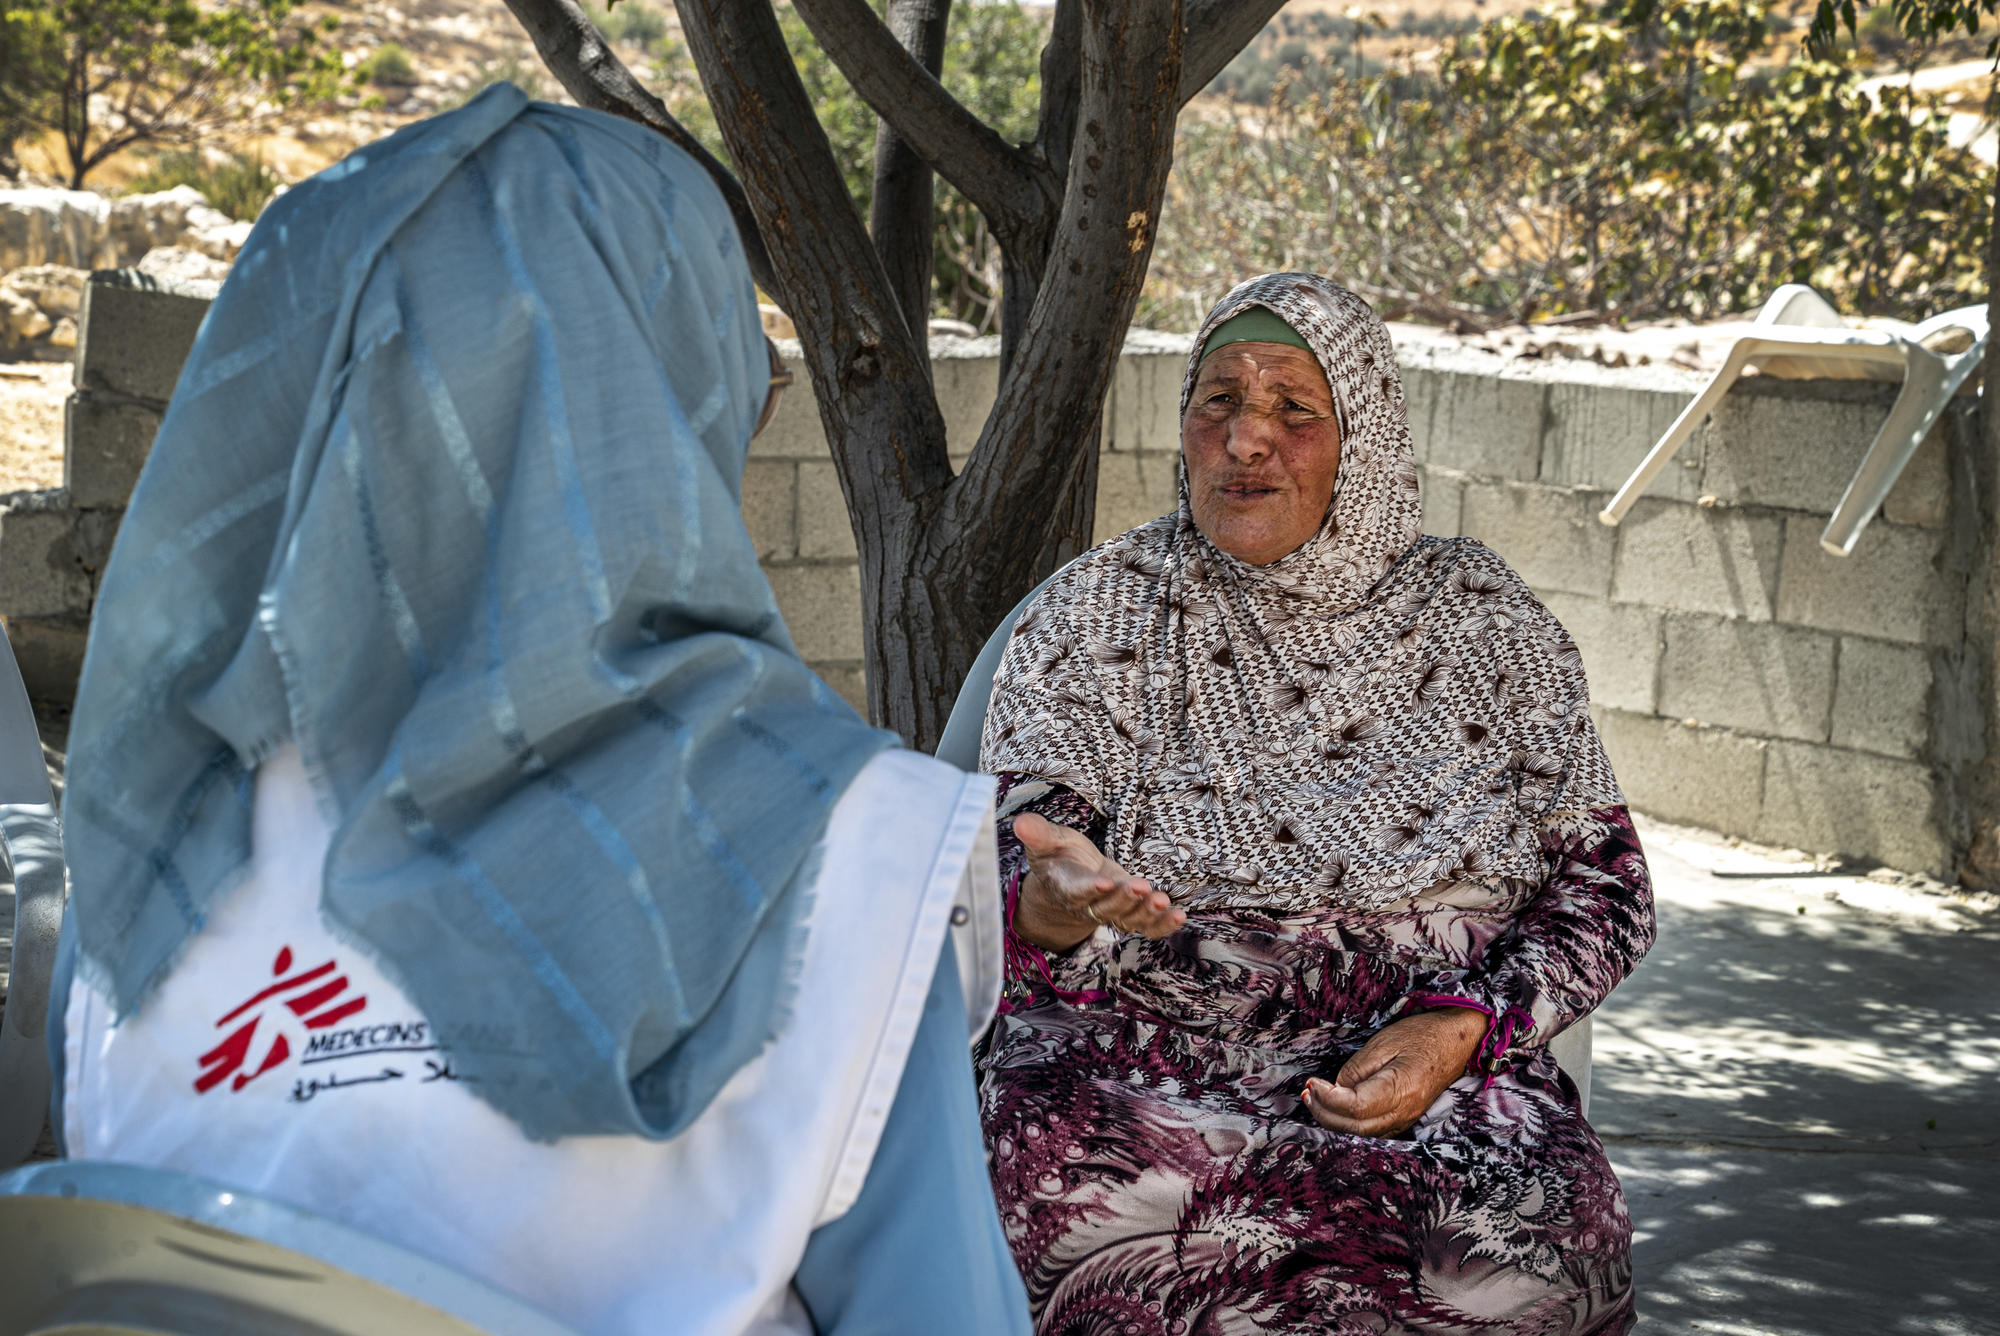 Fatima, a grandmother living in the West Bank, speaks to a member of MSF staff